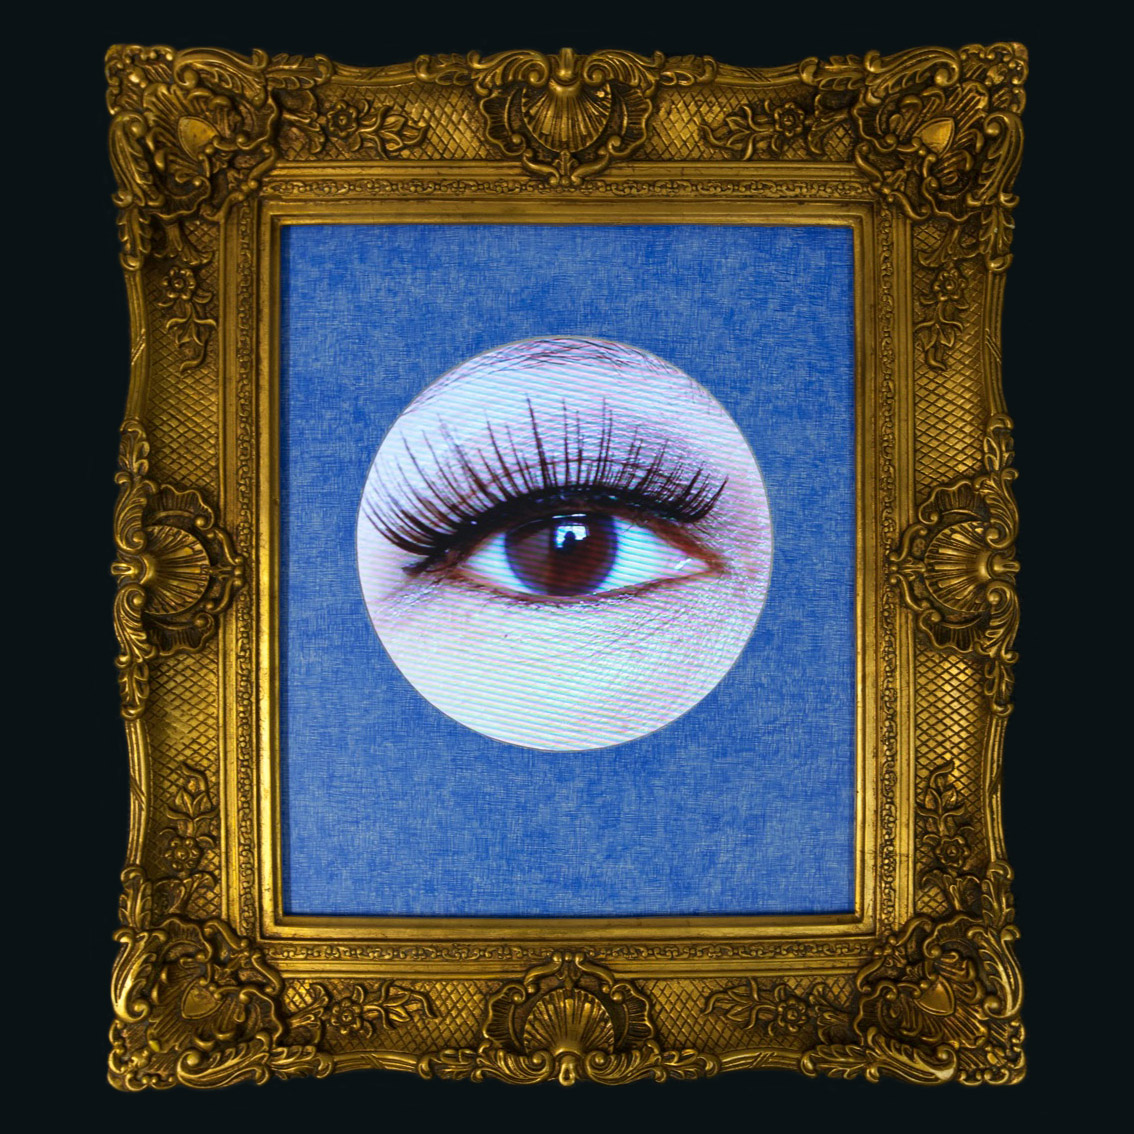 A circular cut out photo of a human eye with long lashes framed in an ornate gold-coloured picture frame.